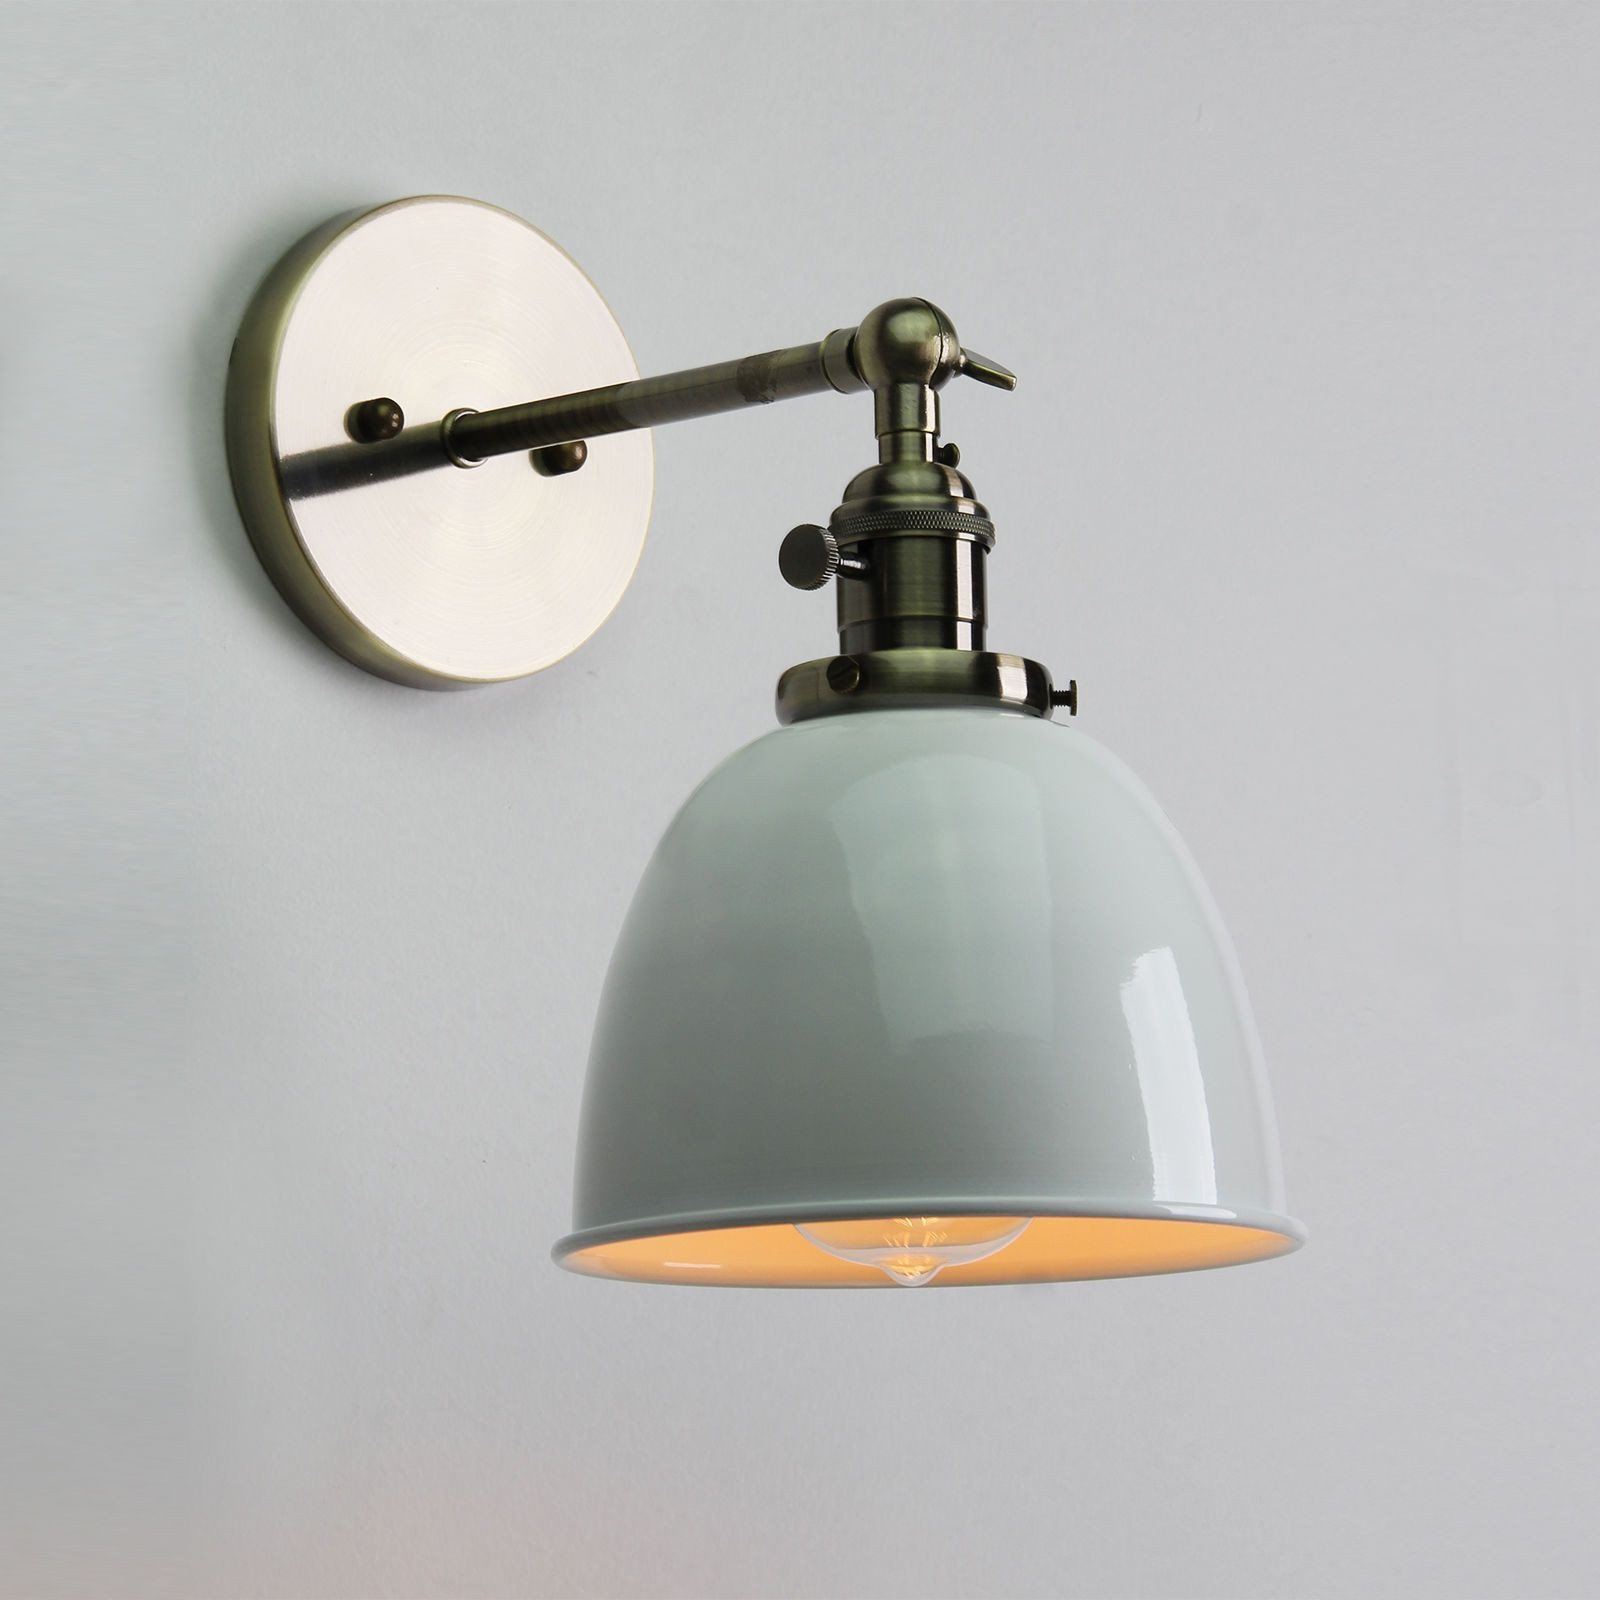 Bedroom Reading Light Wall Mounted Inspirational It Has A Clean Industrial Look that is Super Cool the Glass